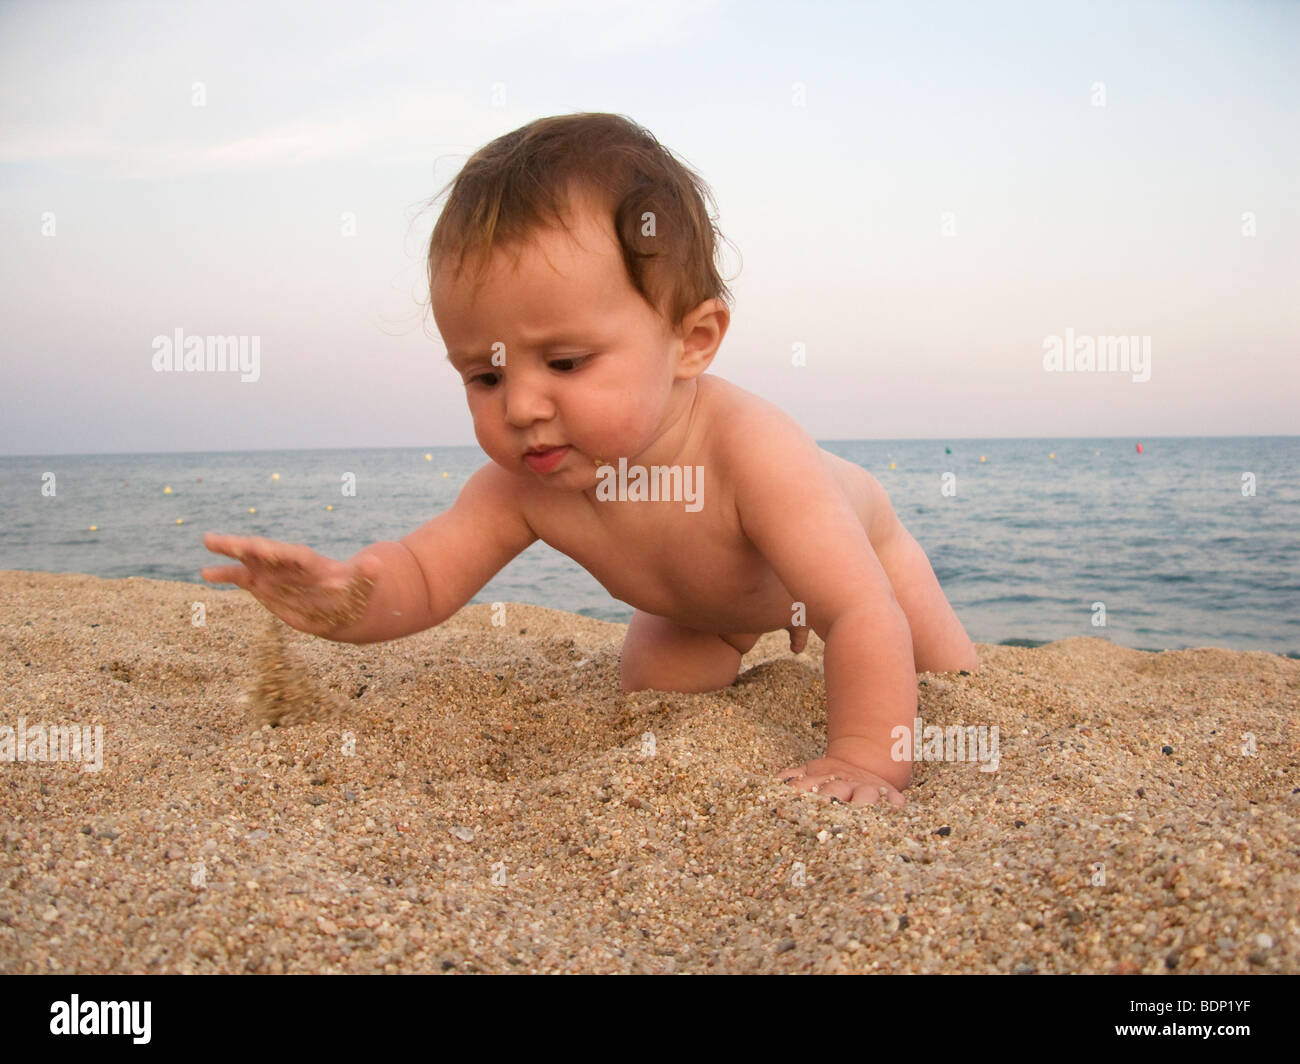 bay boy playing with the sand on the beach - Stock Image